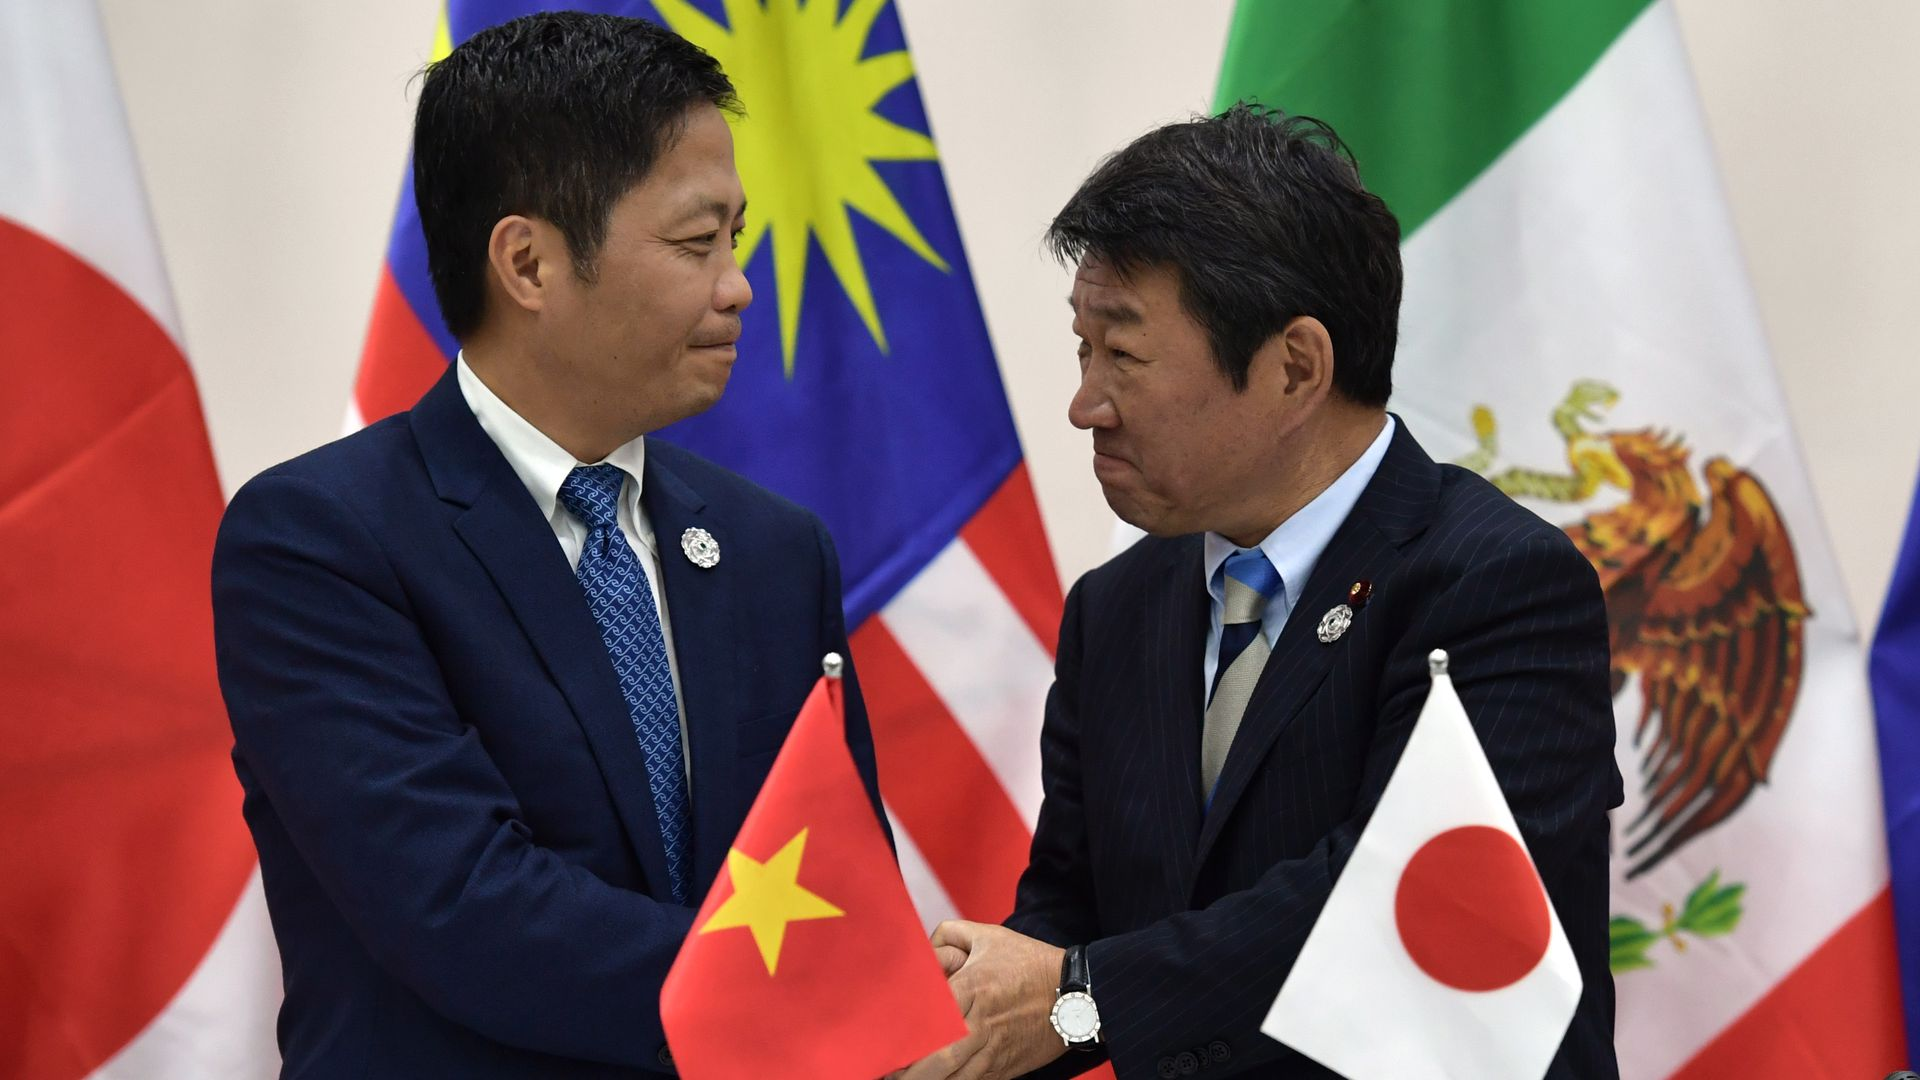 Ministers from Vietnam and Japan shaking hands